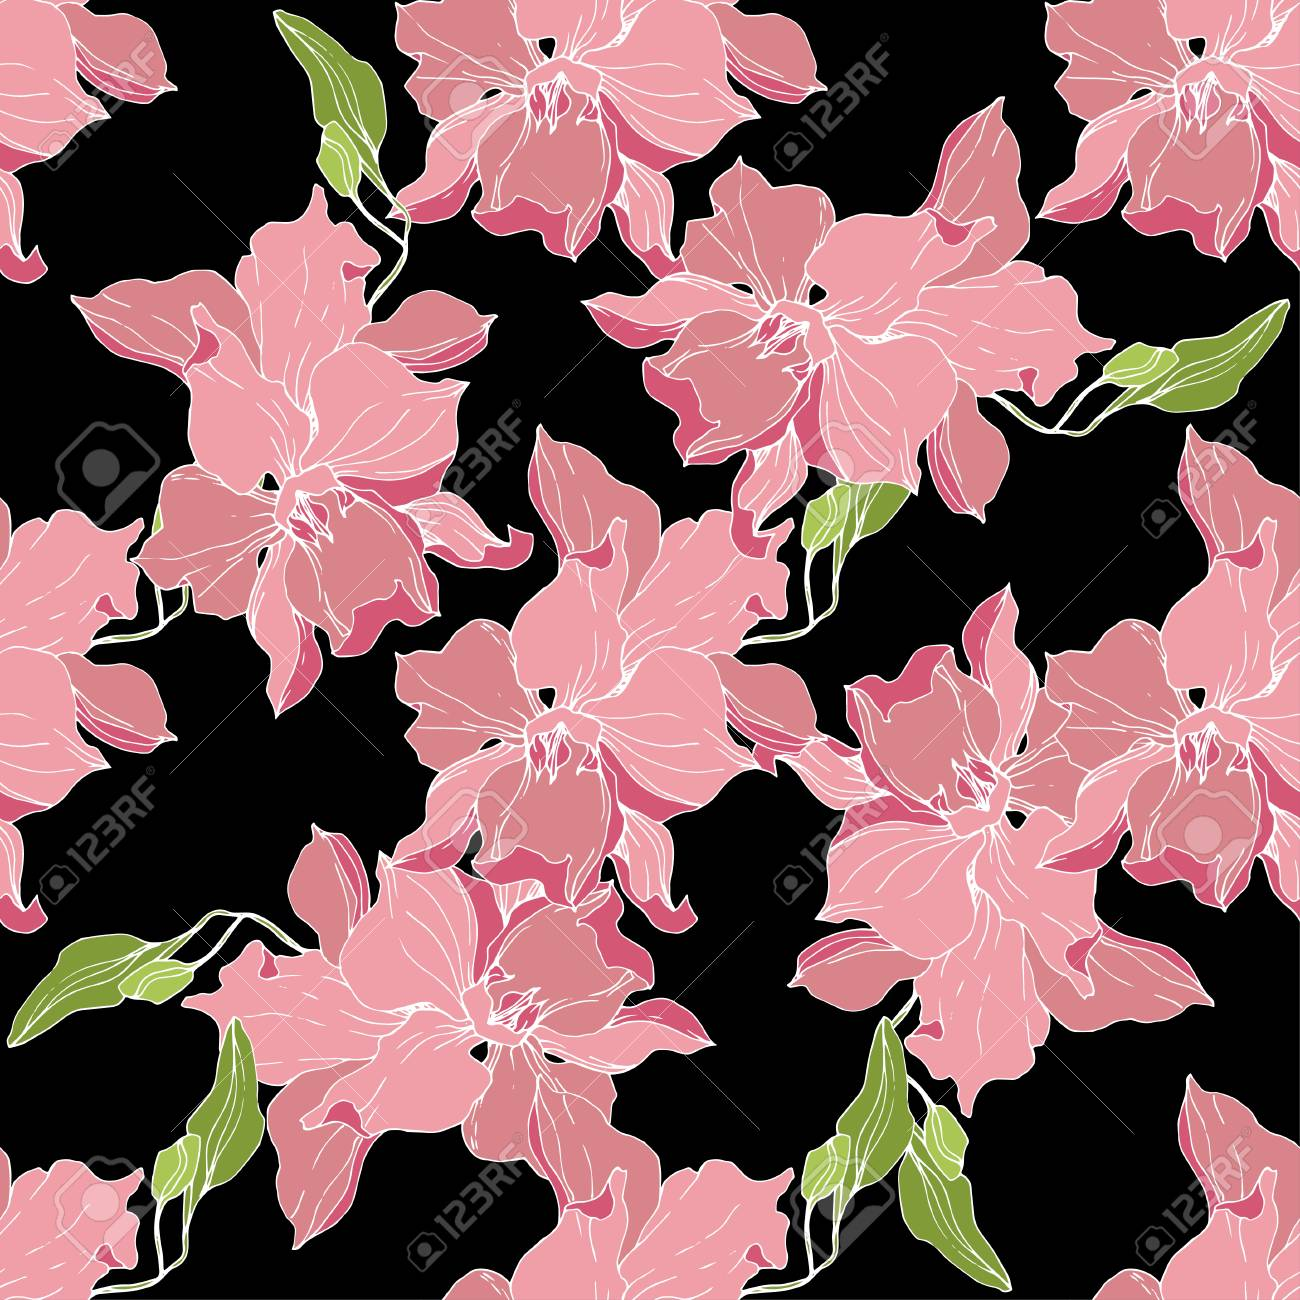 Vector Pink Orchid Floral Botanical Flower Seamless Background